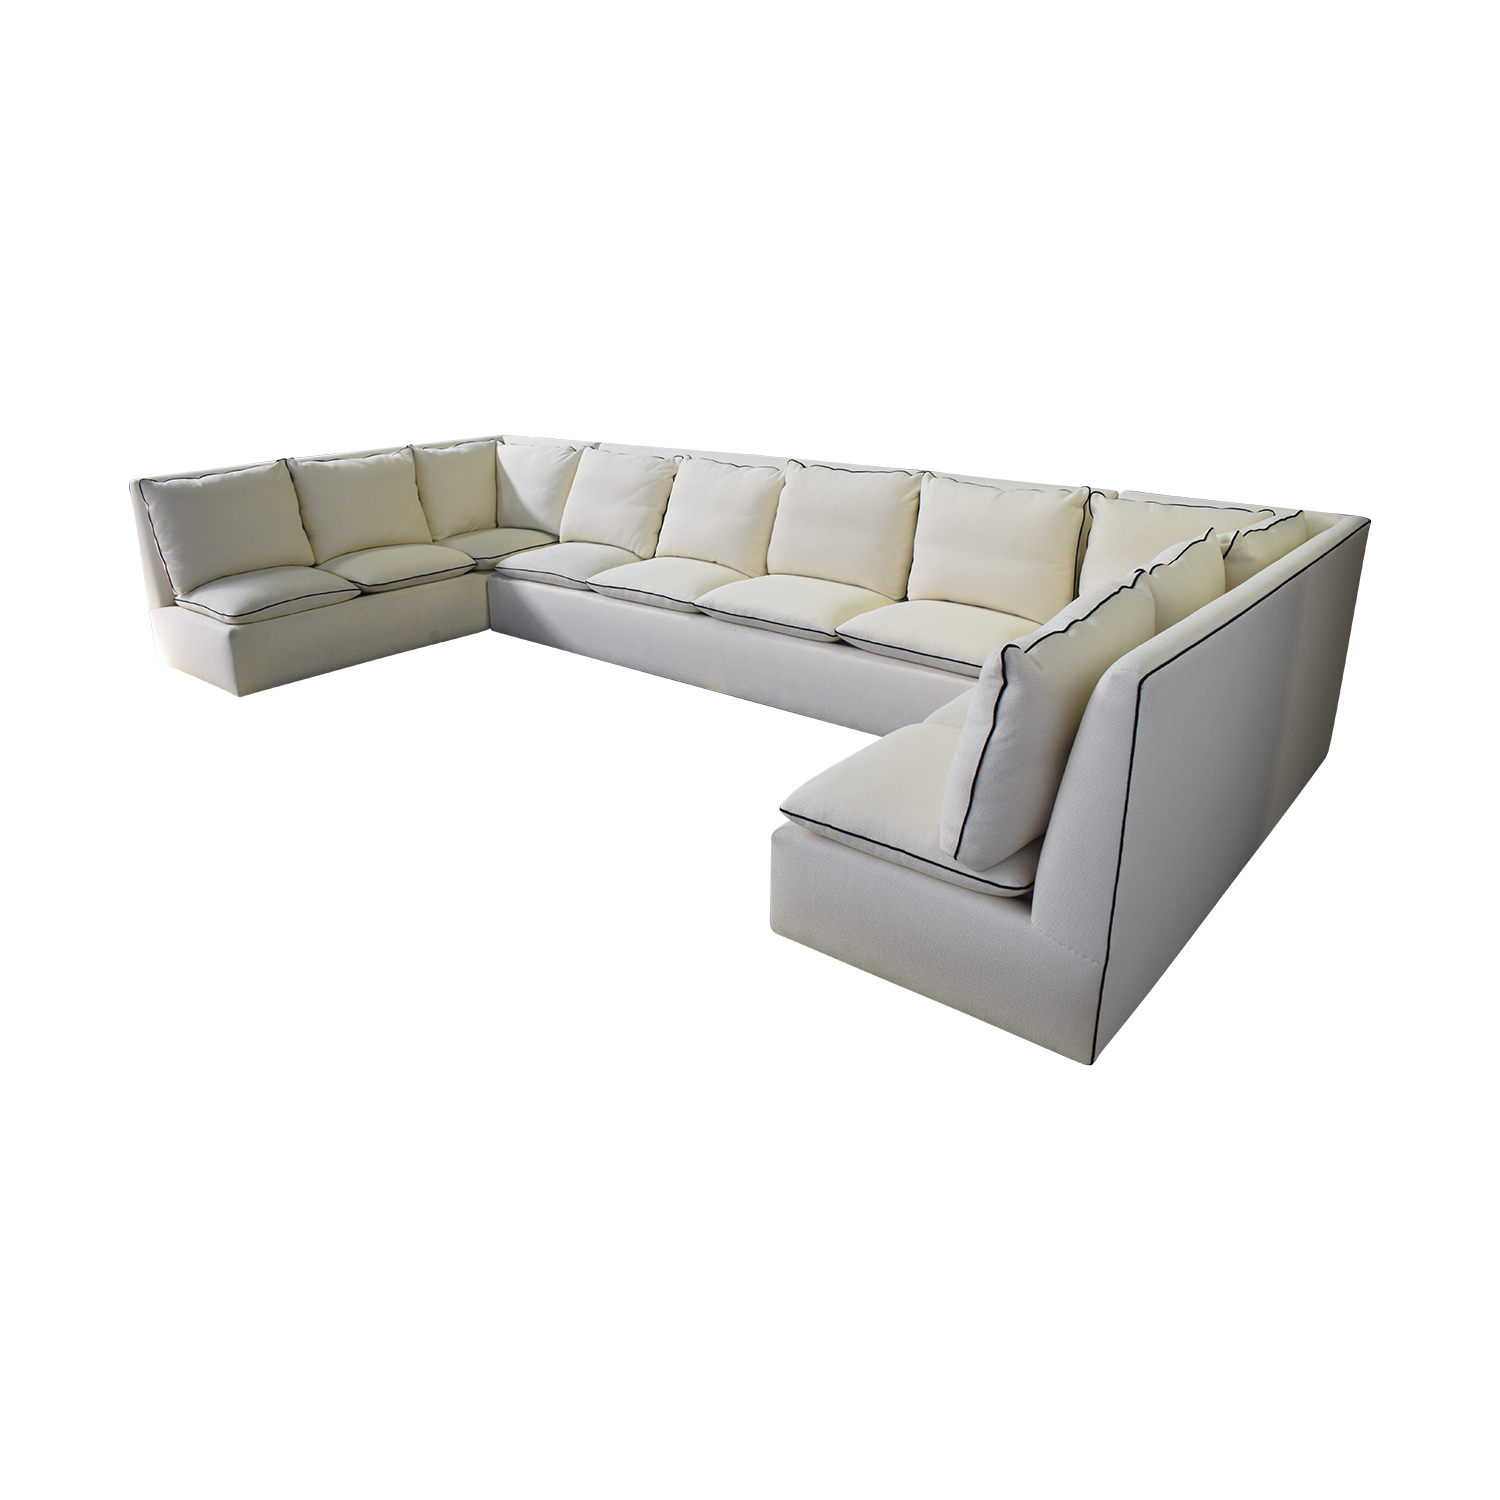 Custom White U-Shaped Sectional / Sectionals